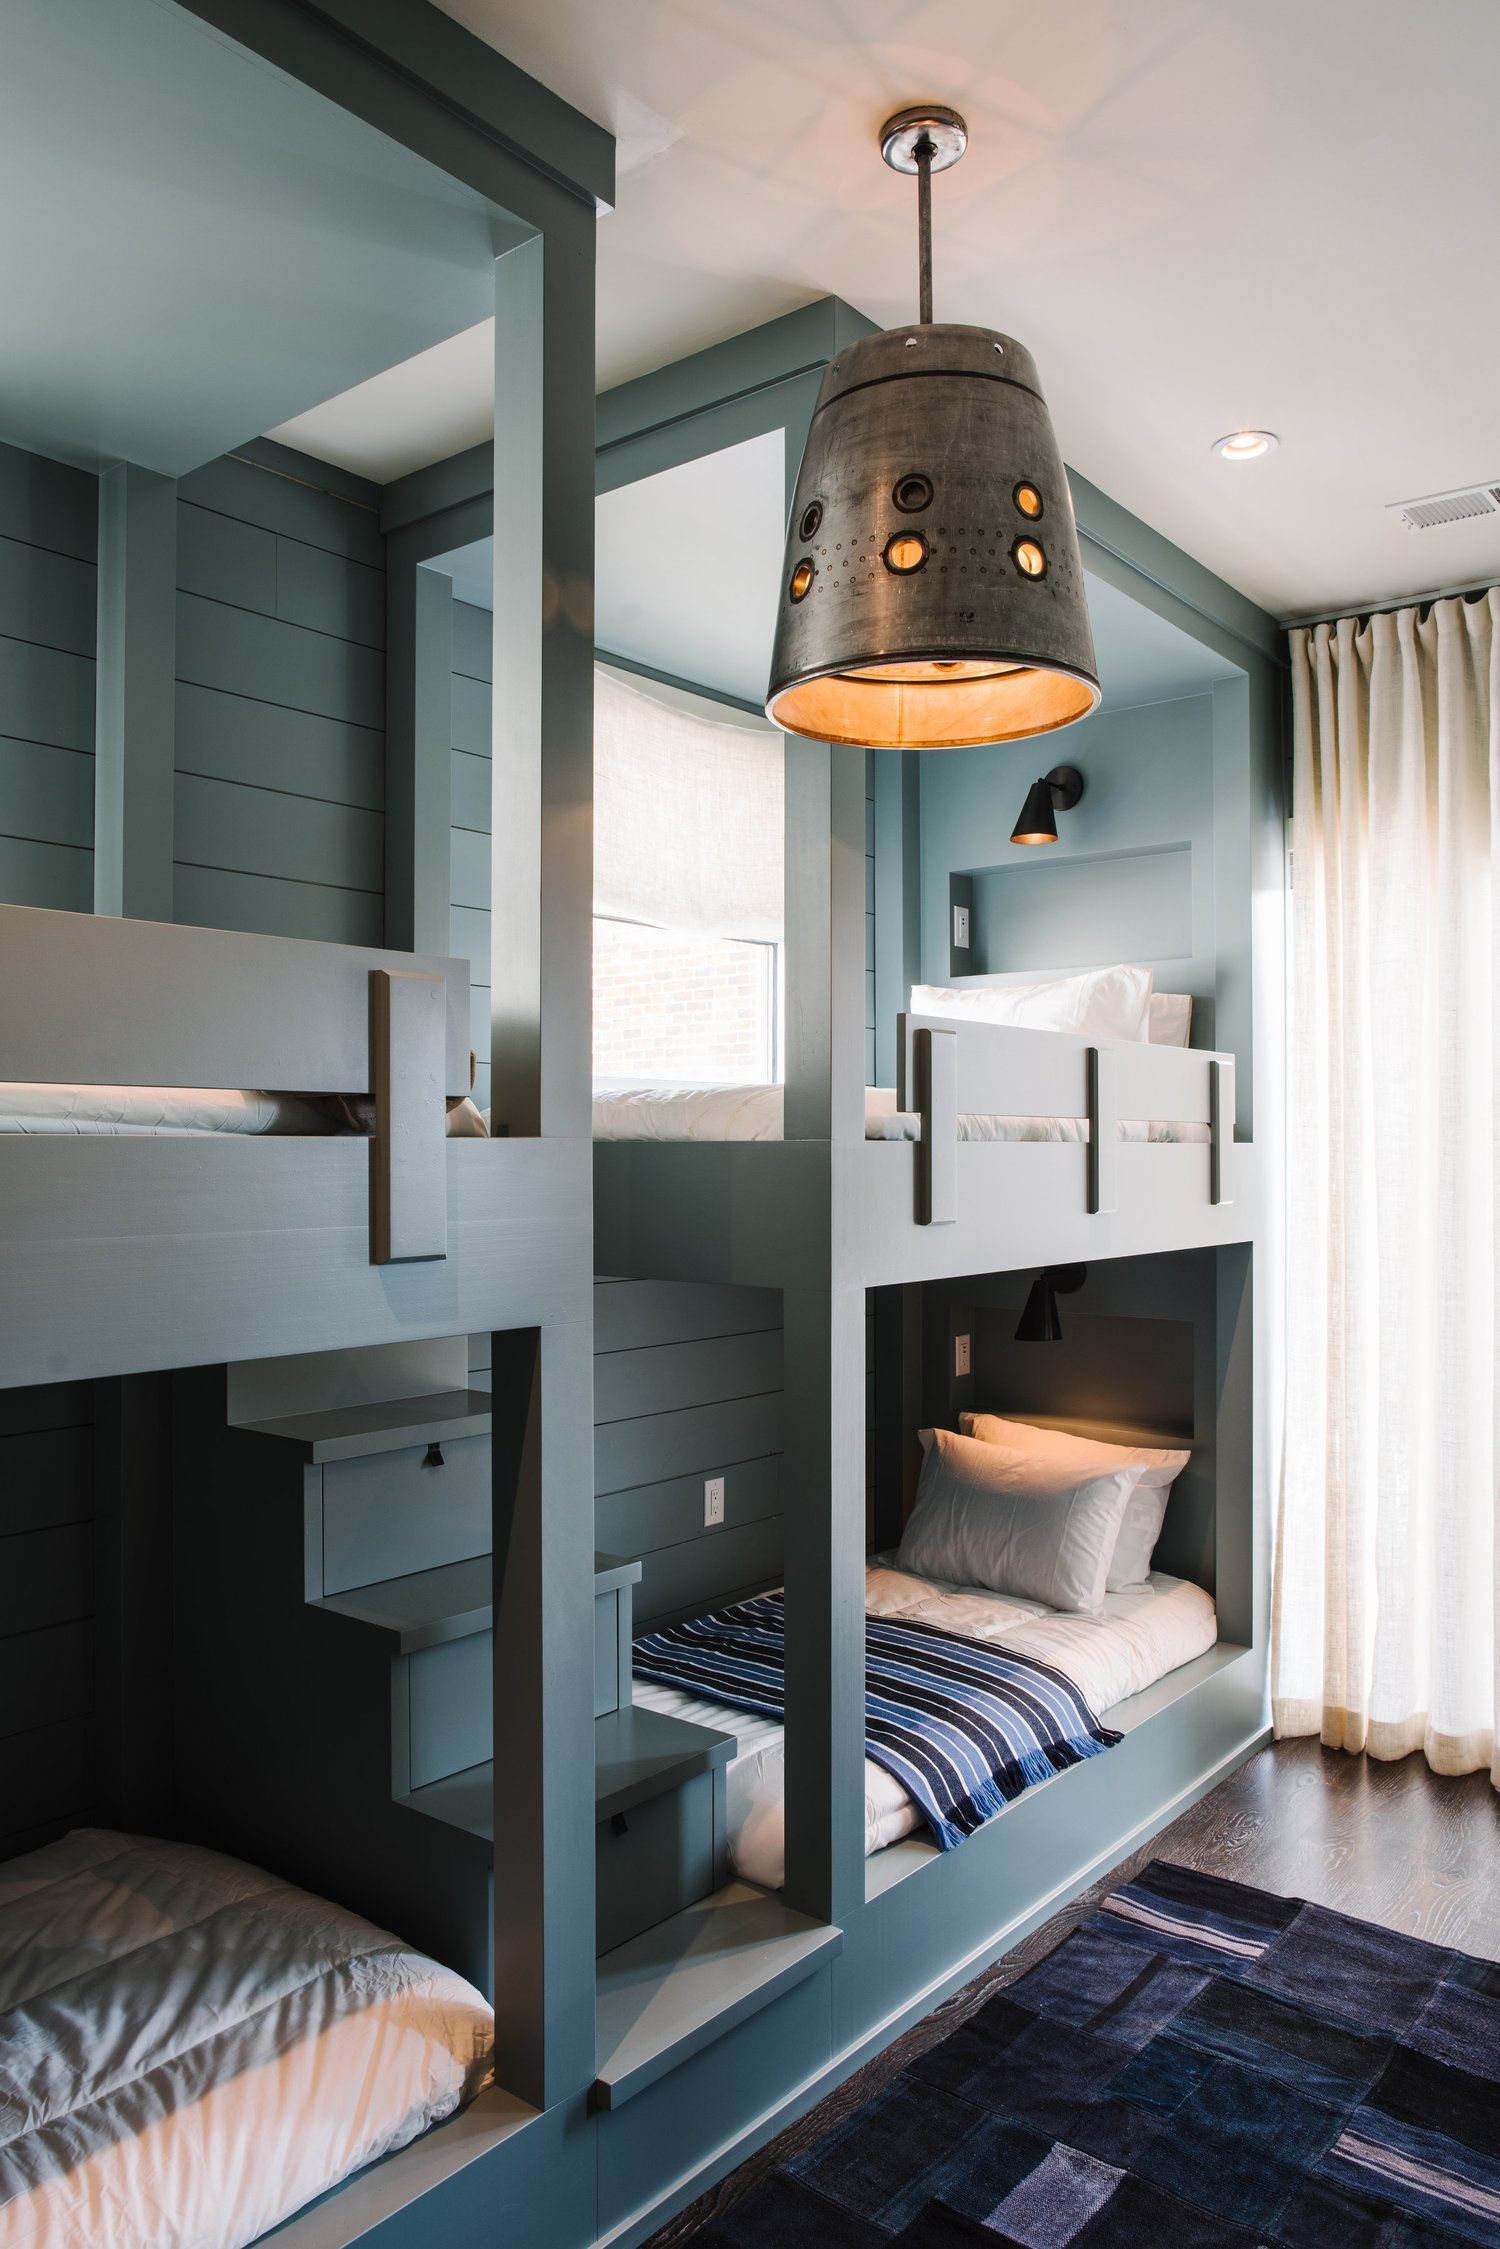 Bunk Beds Designs For Kids Rooms: Built In Bunk Beds. I'm Need My Honey To Learn How To